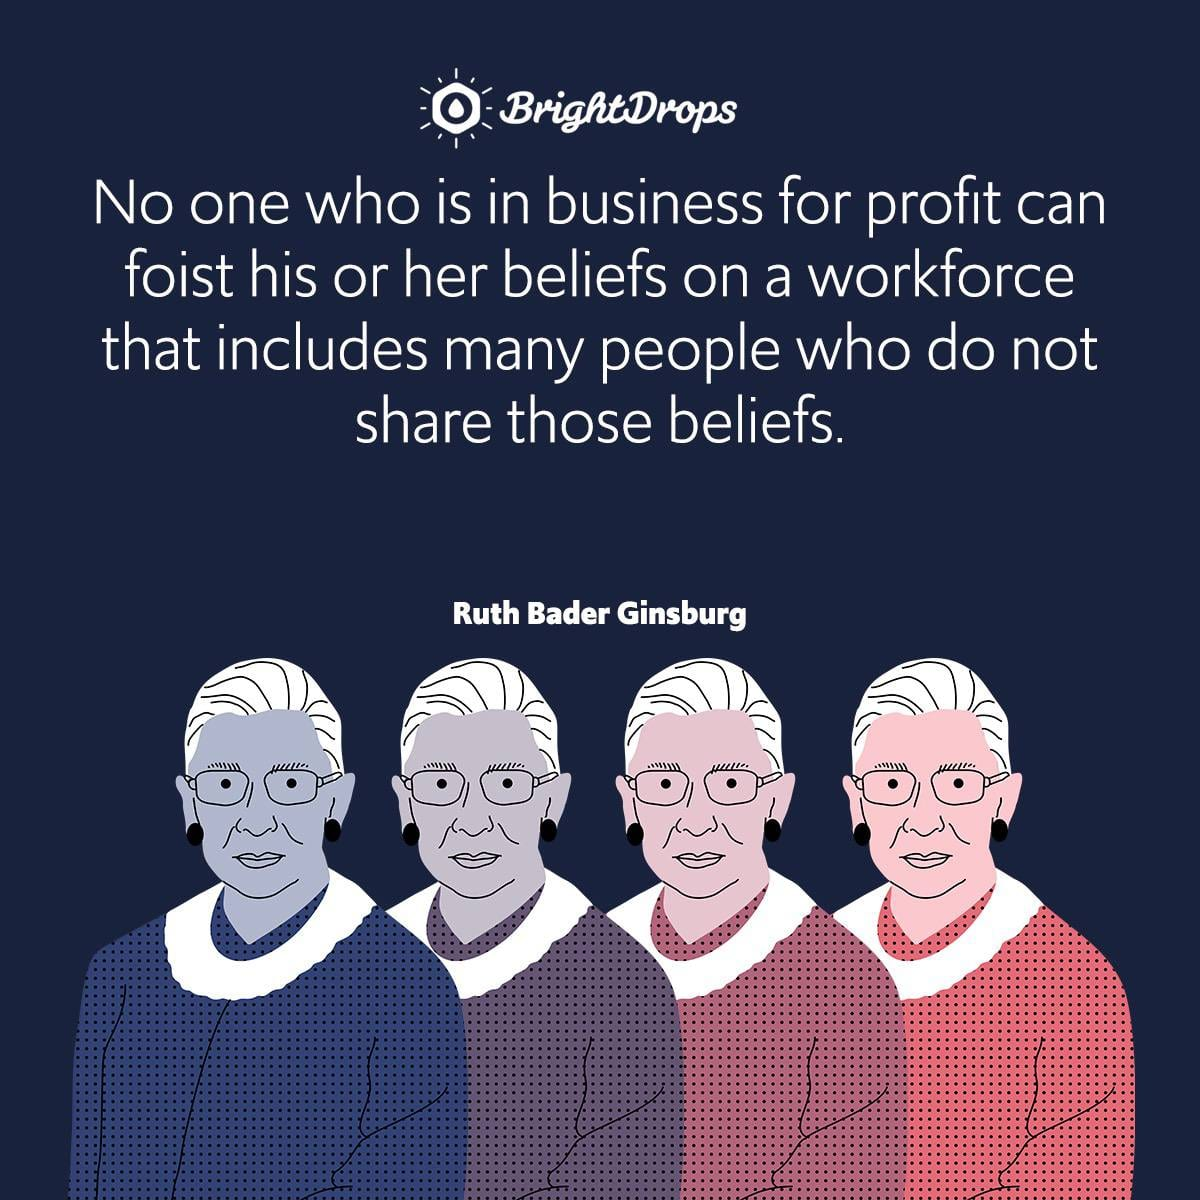 No one who is in business for profit can foist his or her beliefs on a workforce that includes many people who do not share those beliefs.